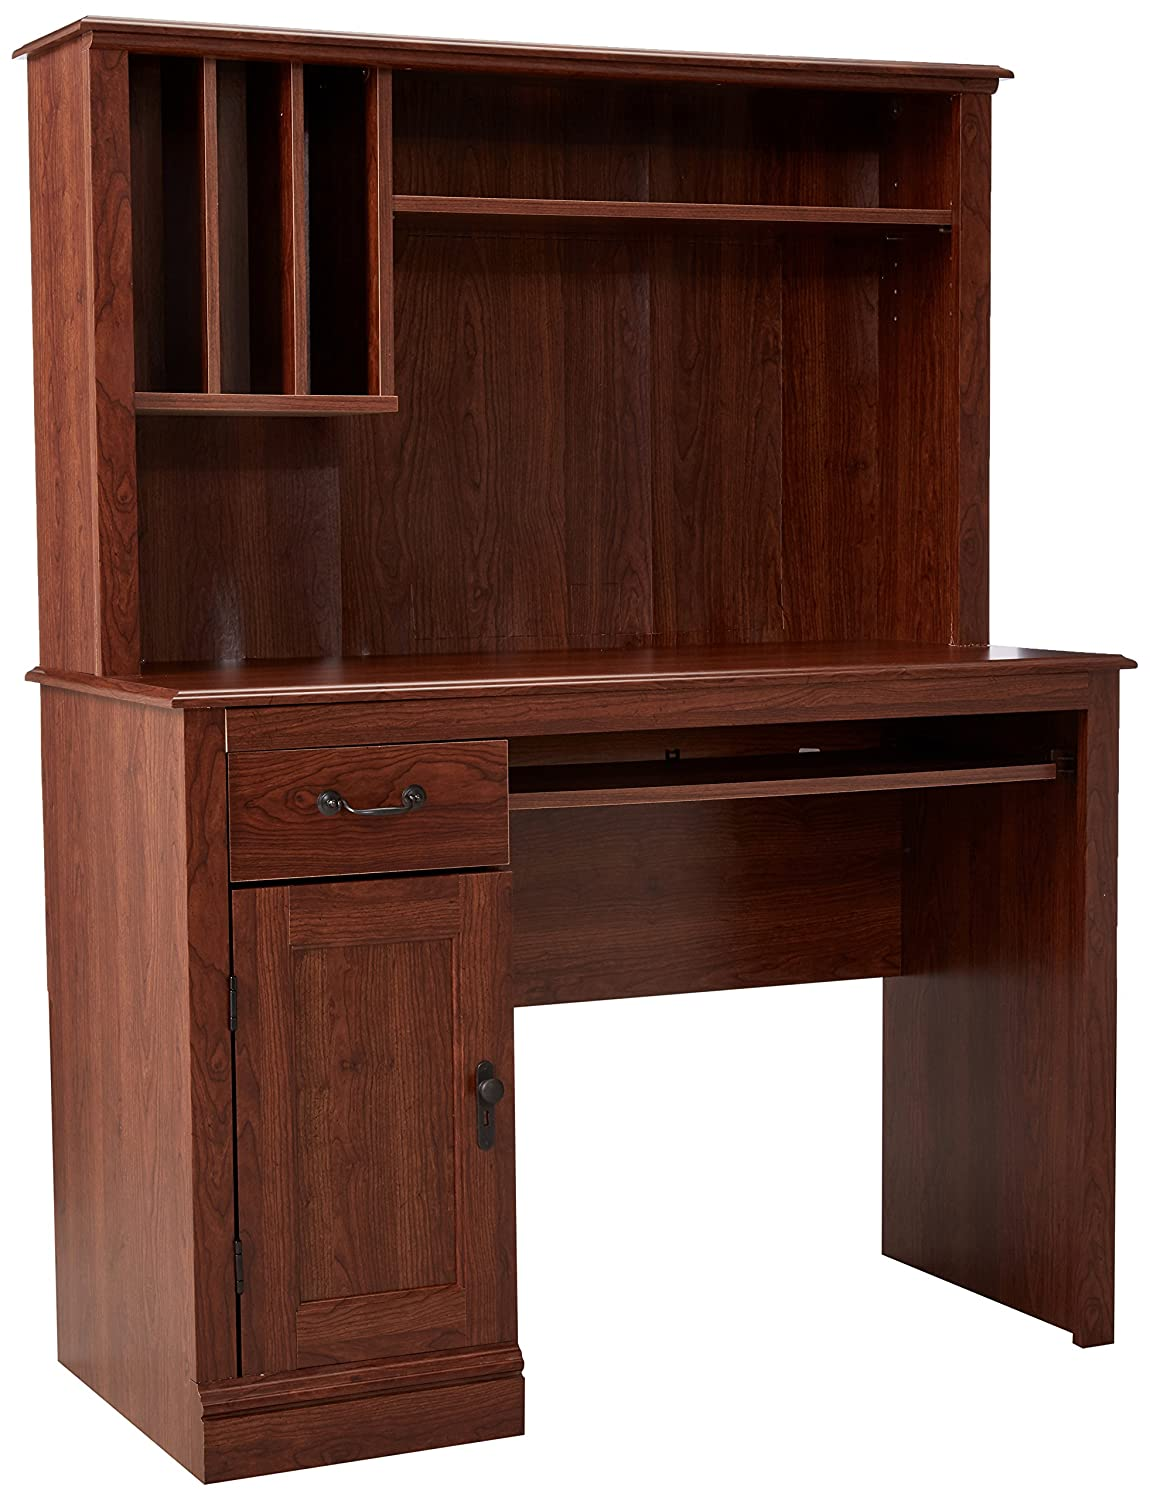 Sauder Camden County Computer Desk with Hutch, Planked Cherry Finish 101736